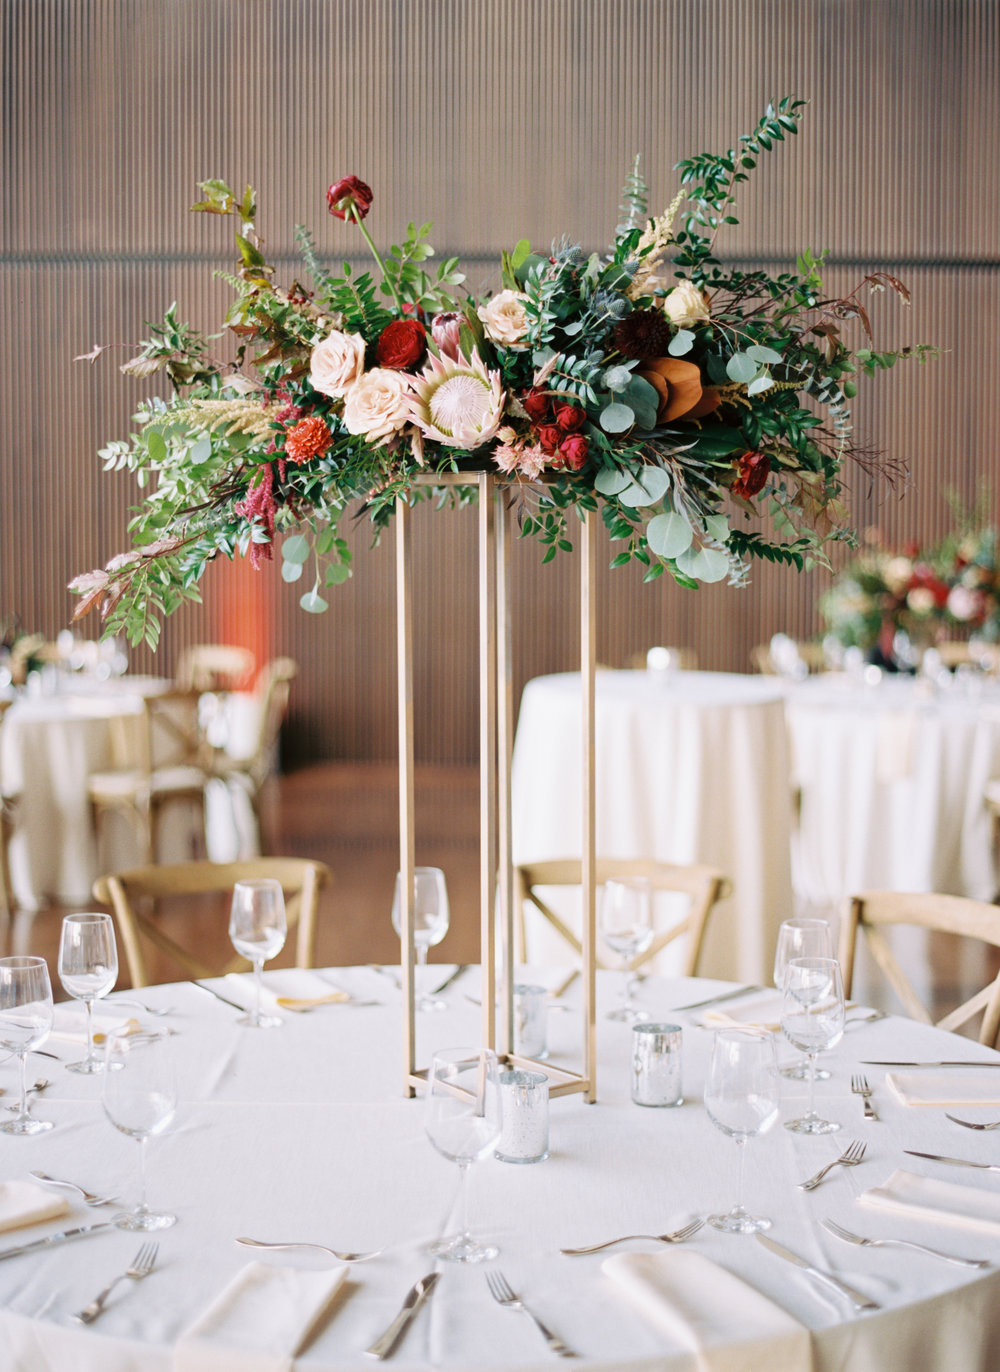 Blush and marsala centerpieces with protea, ranunculus, dahlias, and lush greenery // Country Music Hall of Fame Wedding, Nashville